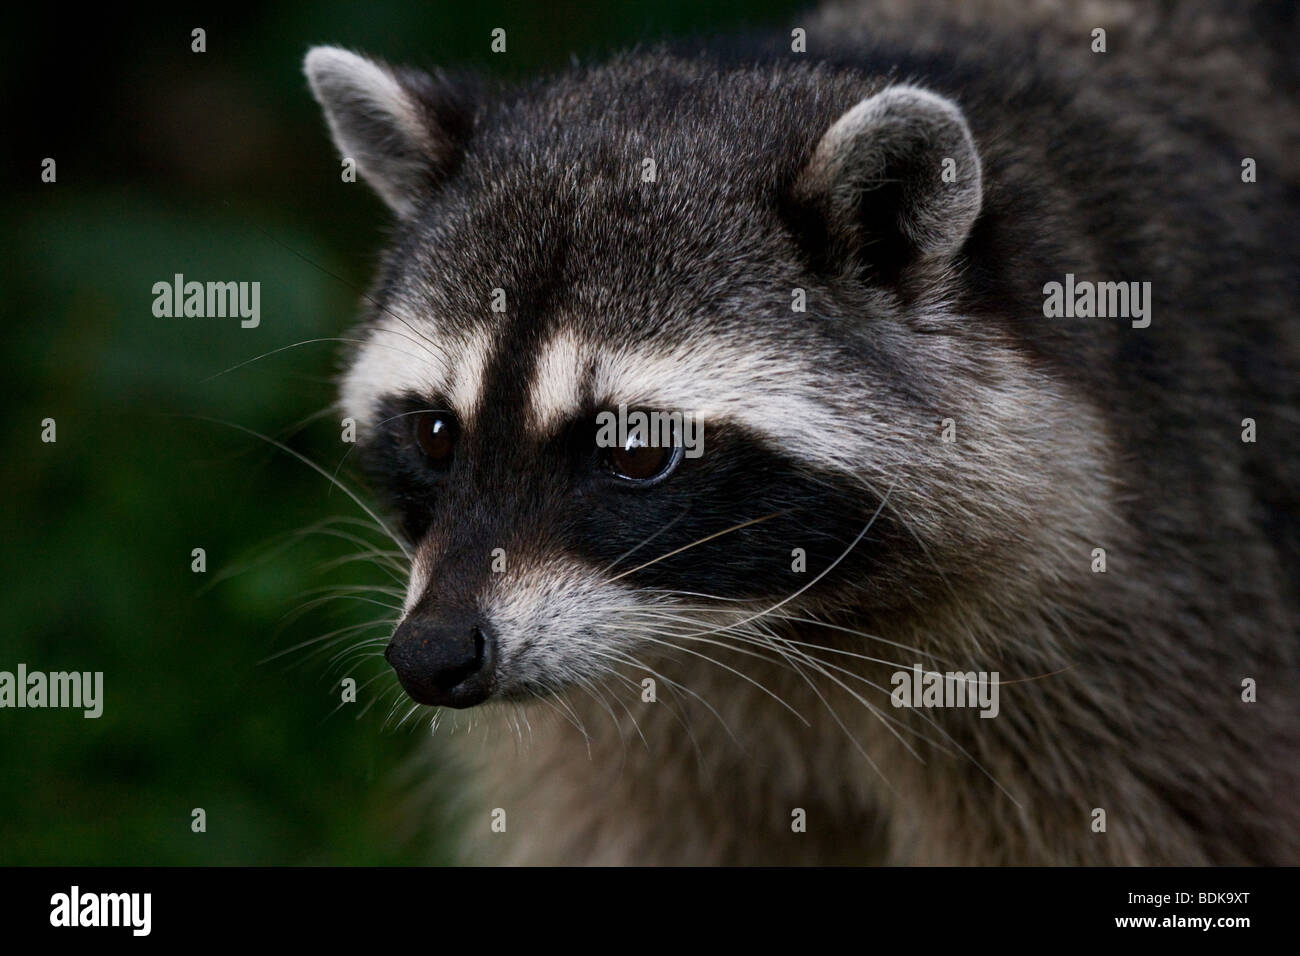 Raccoon in Stanley Park, Vancouver, British Columbia, Canada. Immagini Stock